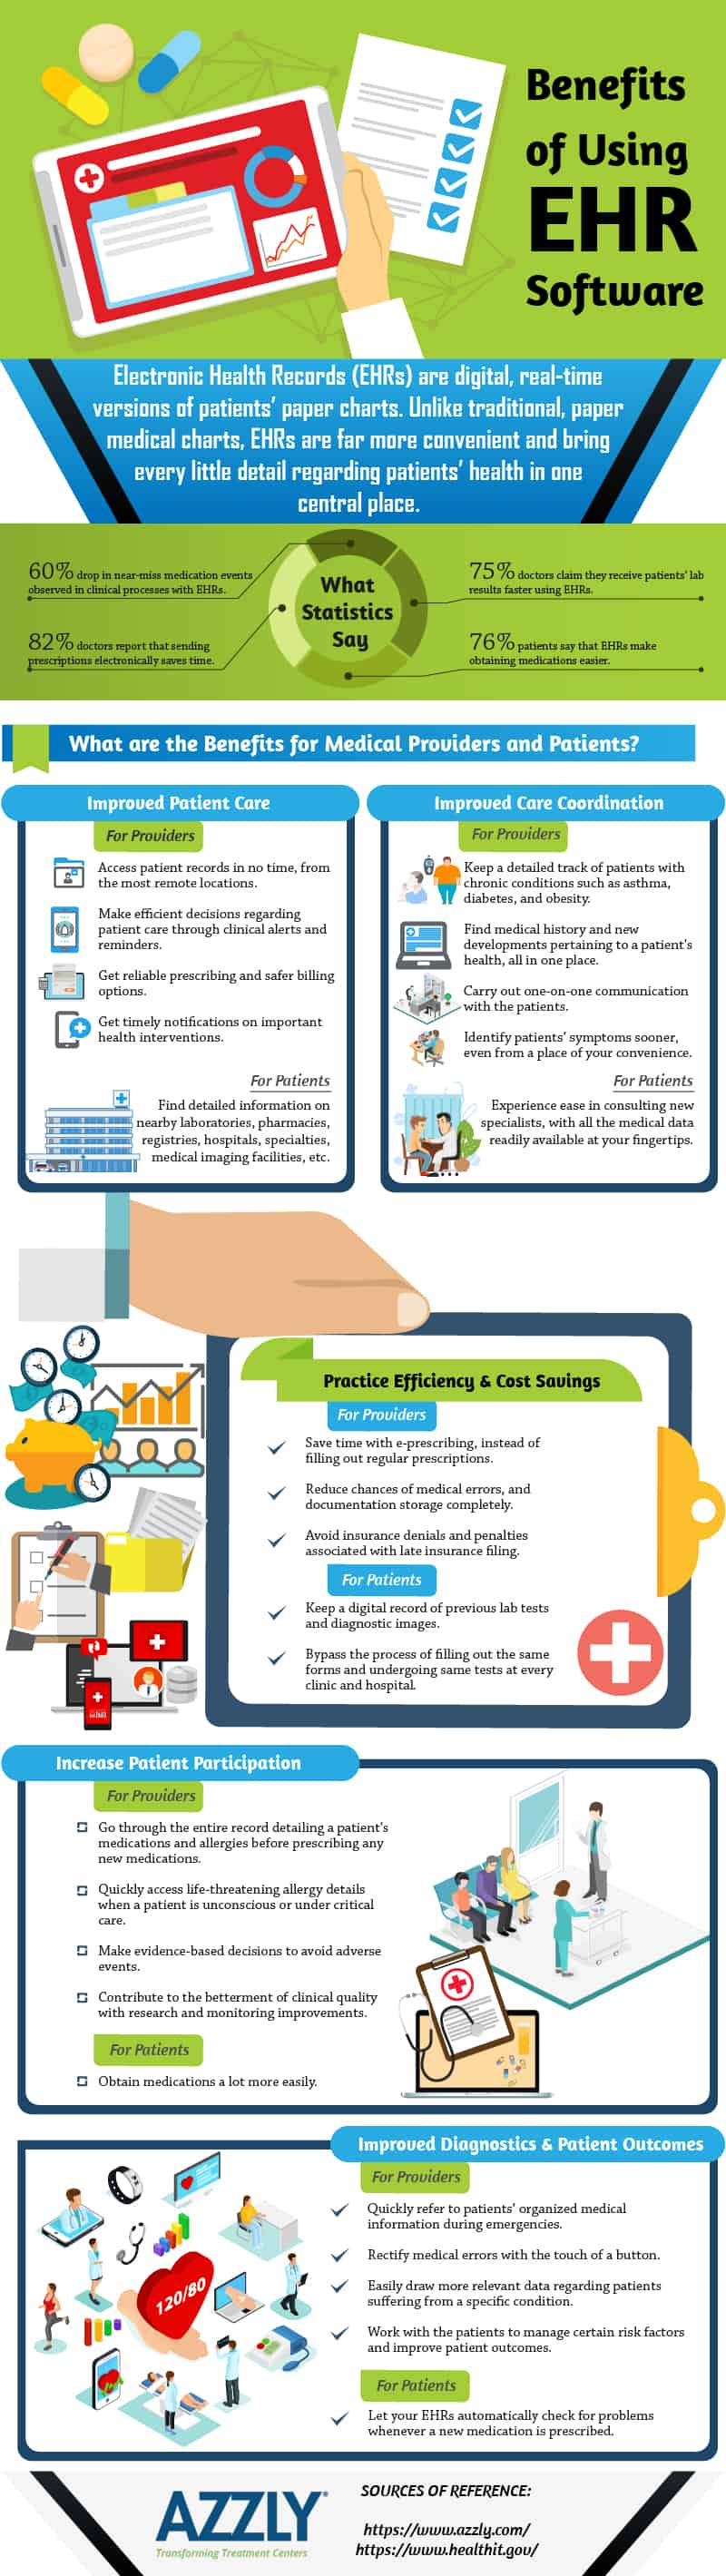 Benefits of Using EHR Software Infographic